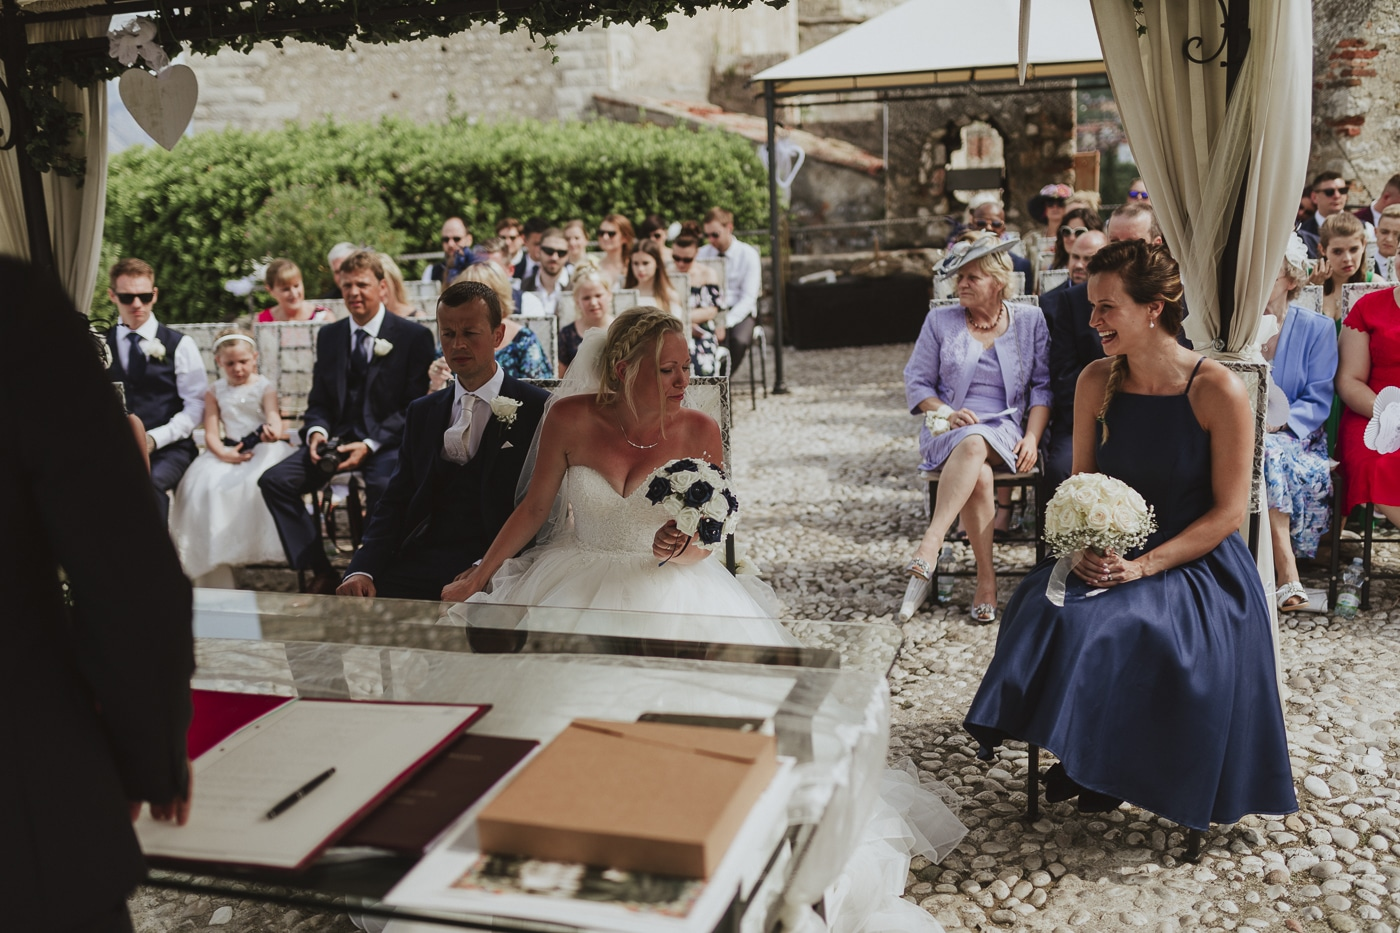 Bride sitting with flowers in her hand smiling at a bridesmaid in a blue dress and white flowers in her hands with wedding guests in the background